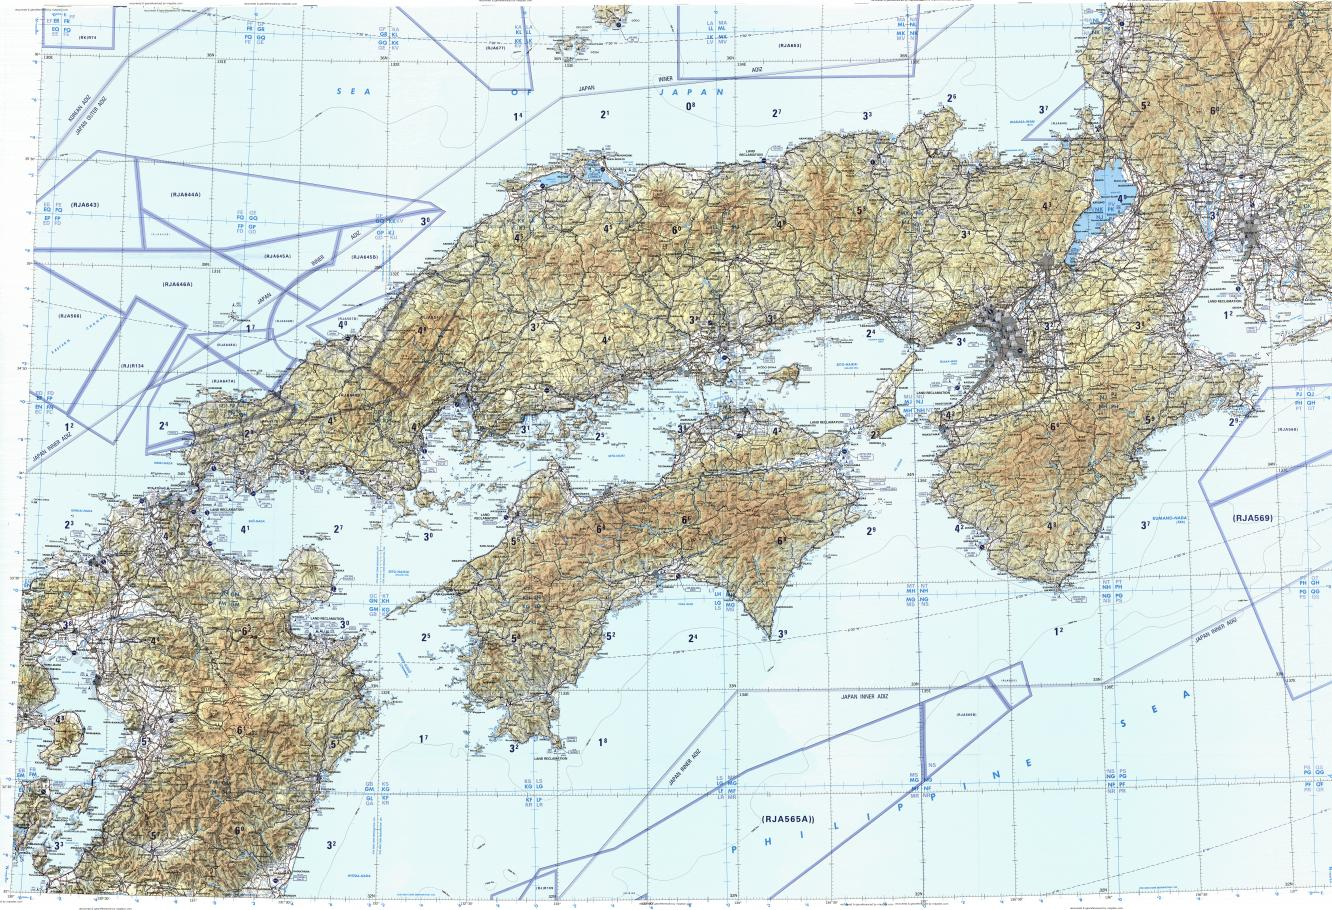 Download topographic map in area of Osaka, Nagoya, Hiroshima ...